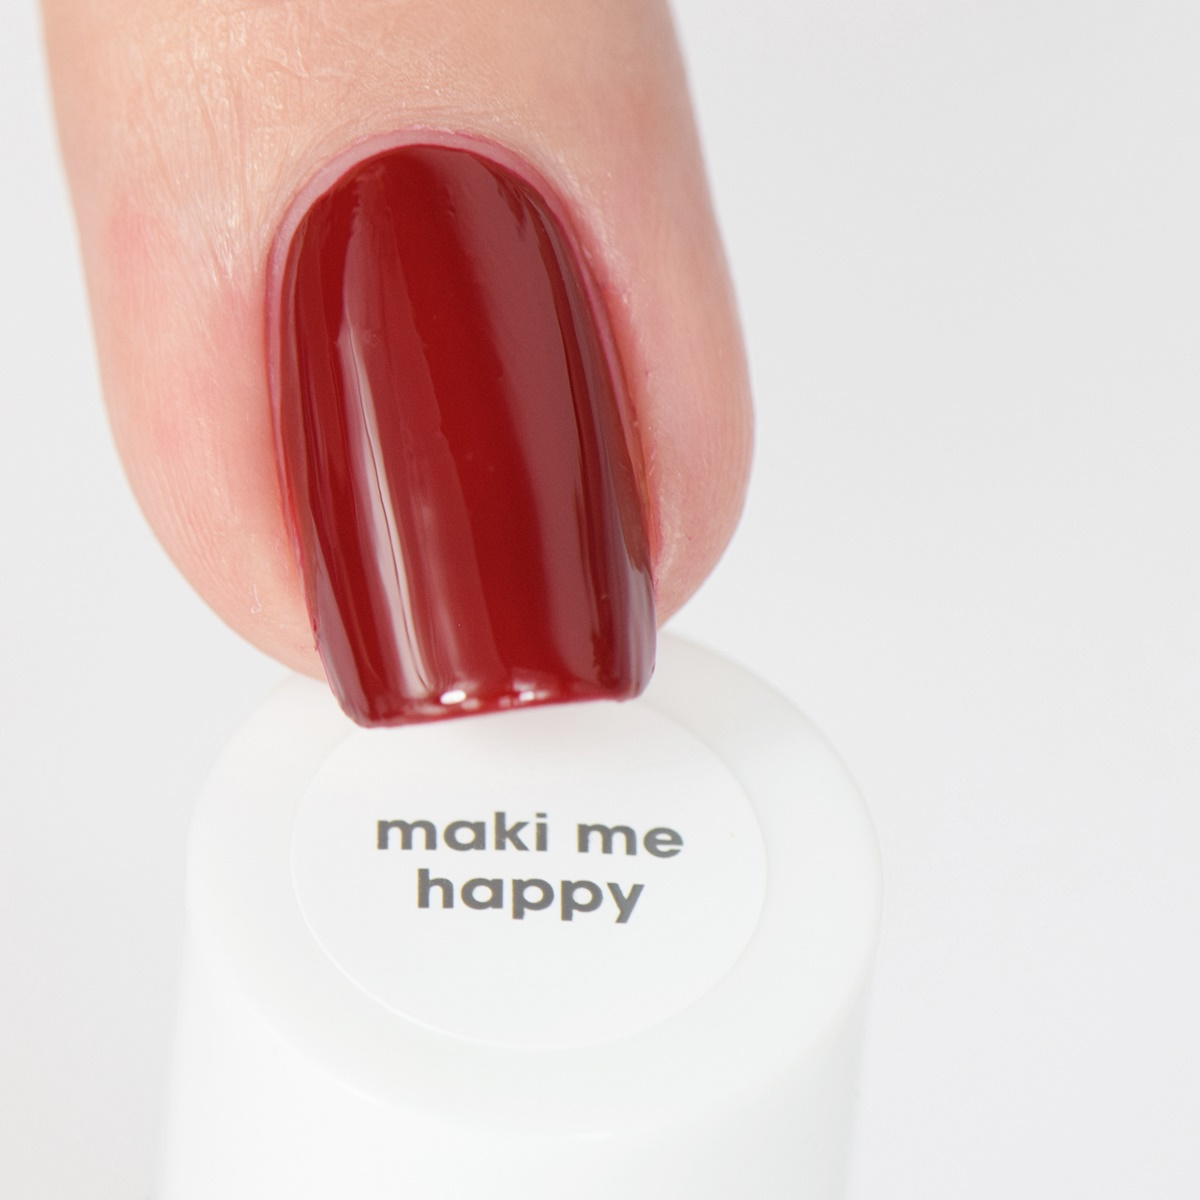 essie fall 2016 maki me happy Swatches Review